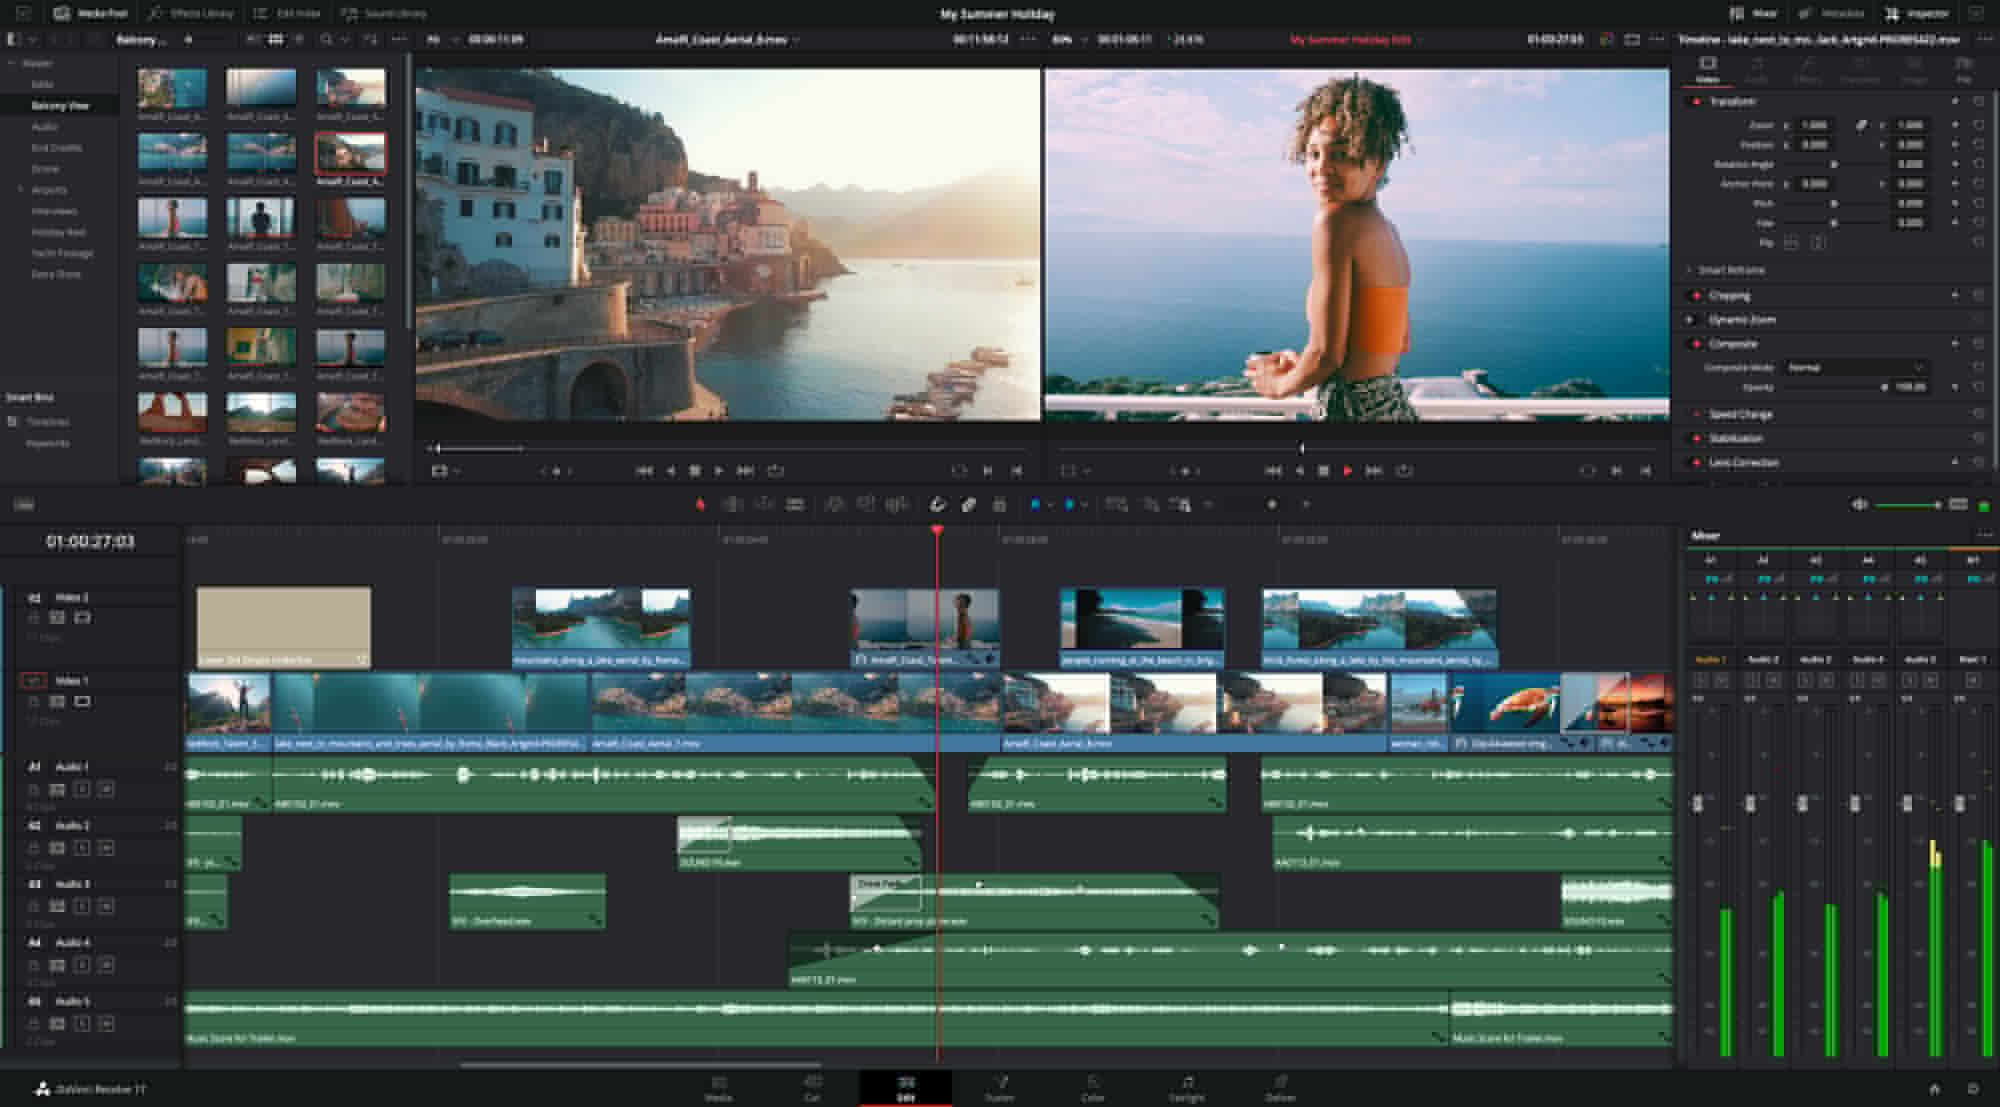 Resolve Studio 17.1 is final: Support for Apple M1 and H.265 hardware encoding and decoding